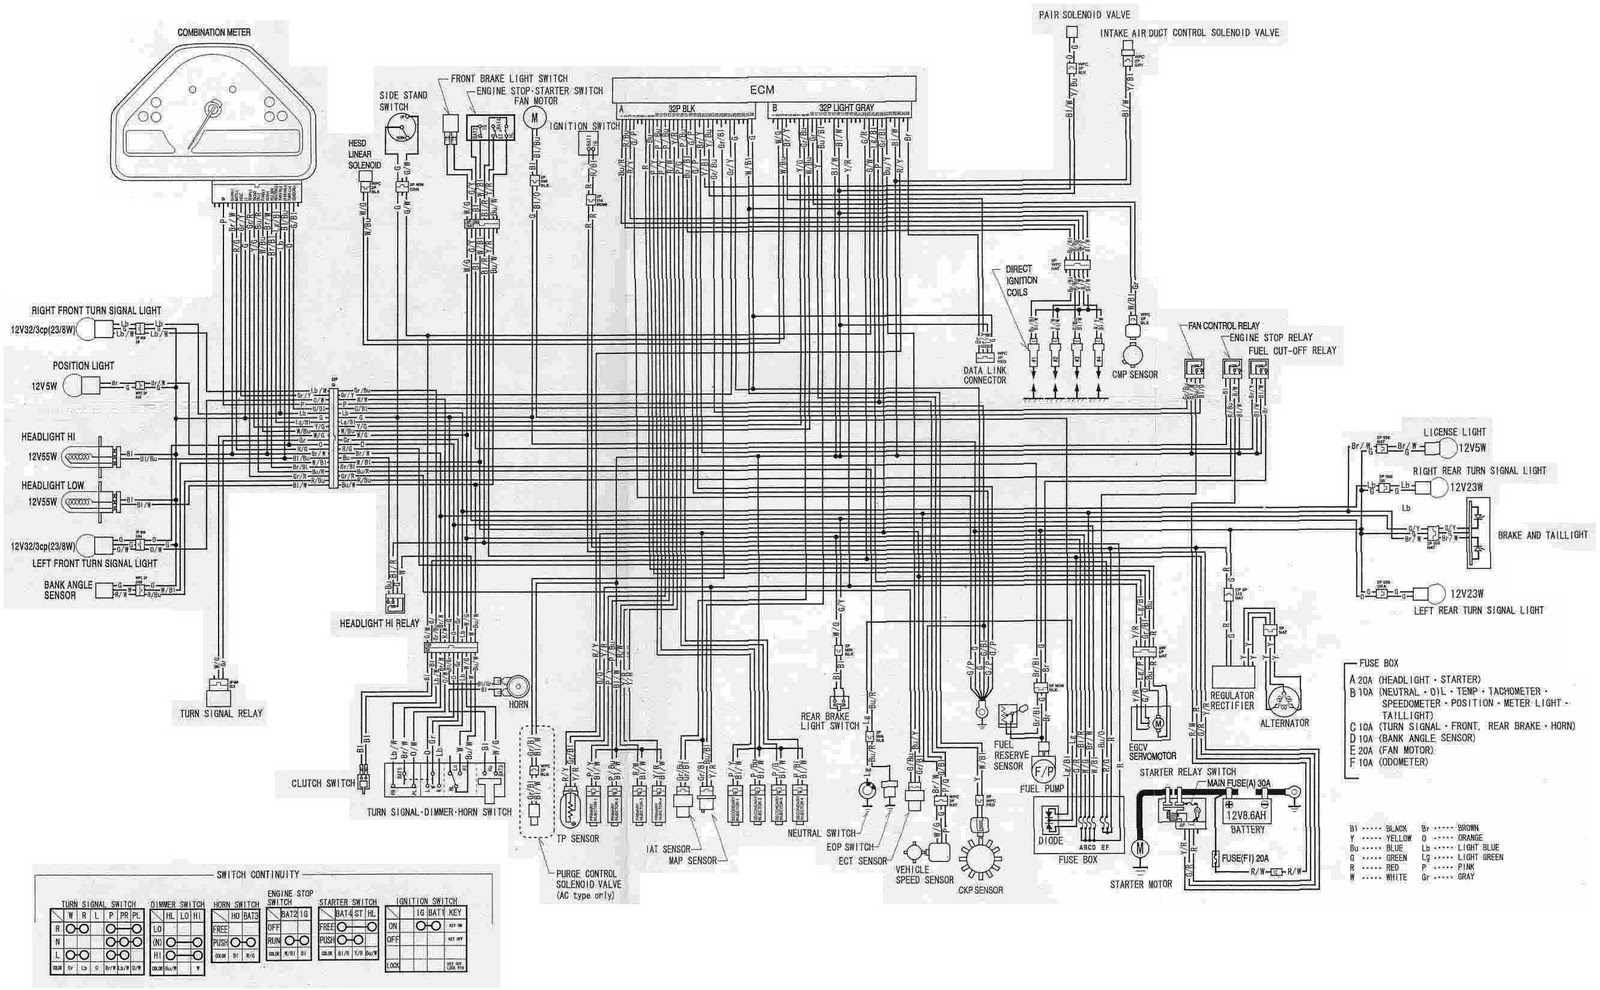 [SCHEMATICS_44OR]  Cbr 1000rr Wiring Diagram - 1967 Mustang Wiper Motor Wiring Diagram for Wiring  Diagram Schematics | Honda Cbr 1000 Wiring Diagram |  | Wiring Diagram Schematics